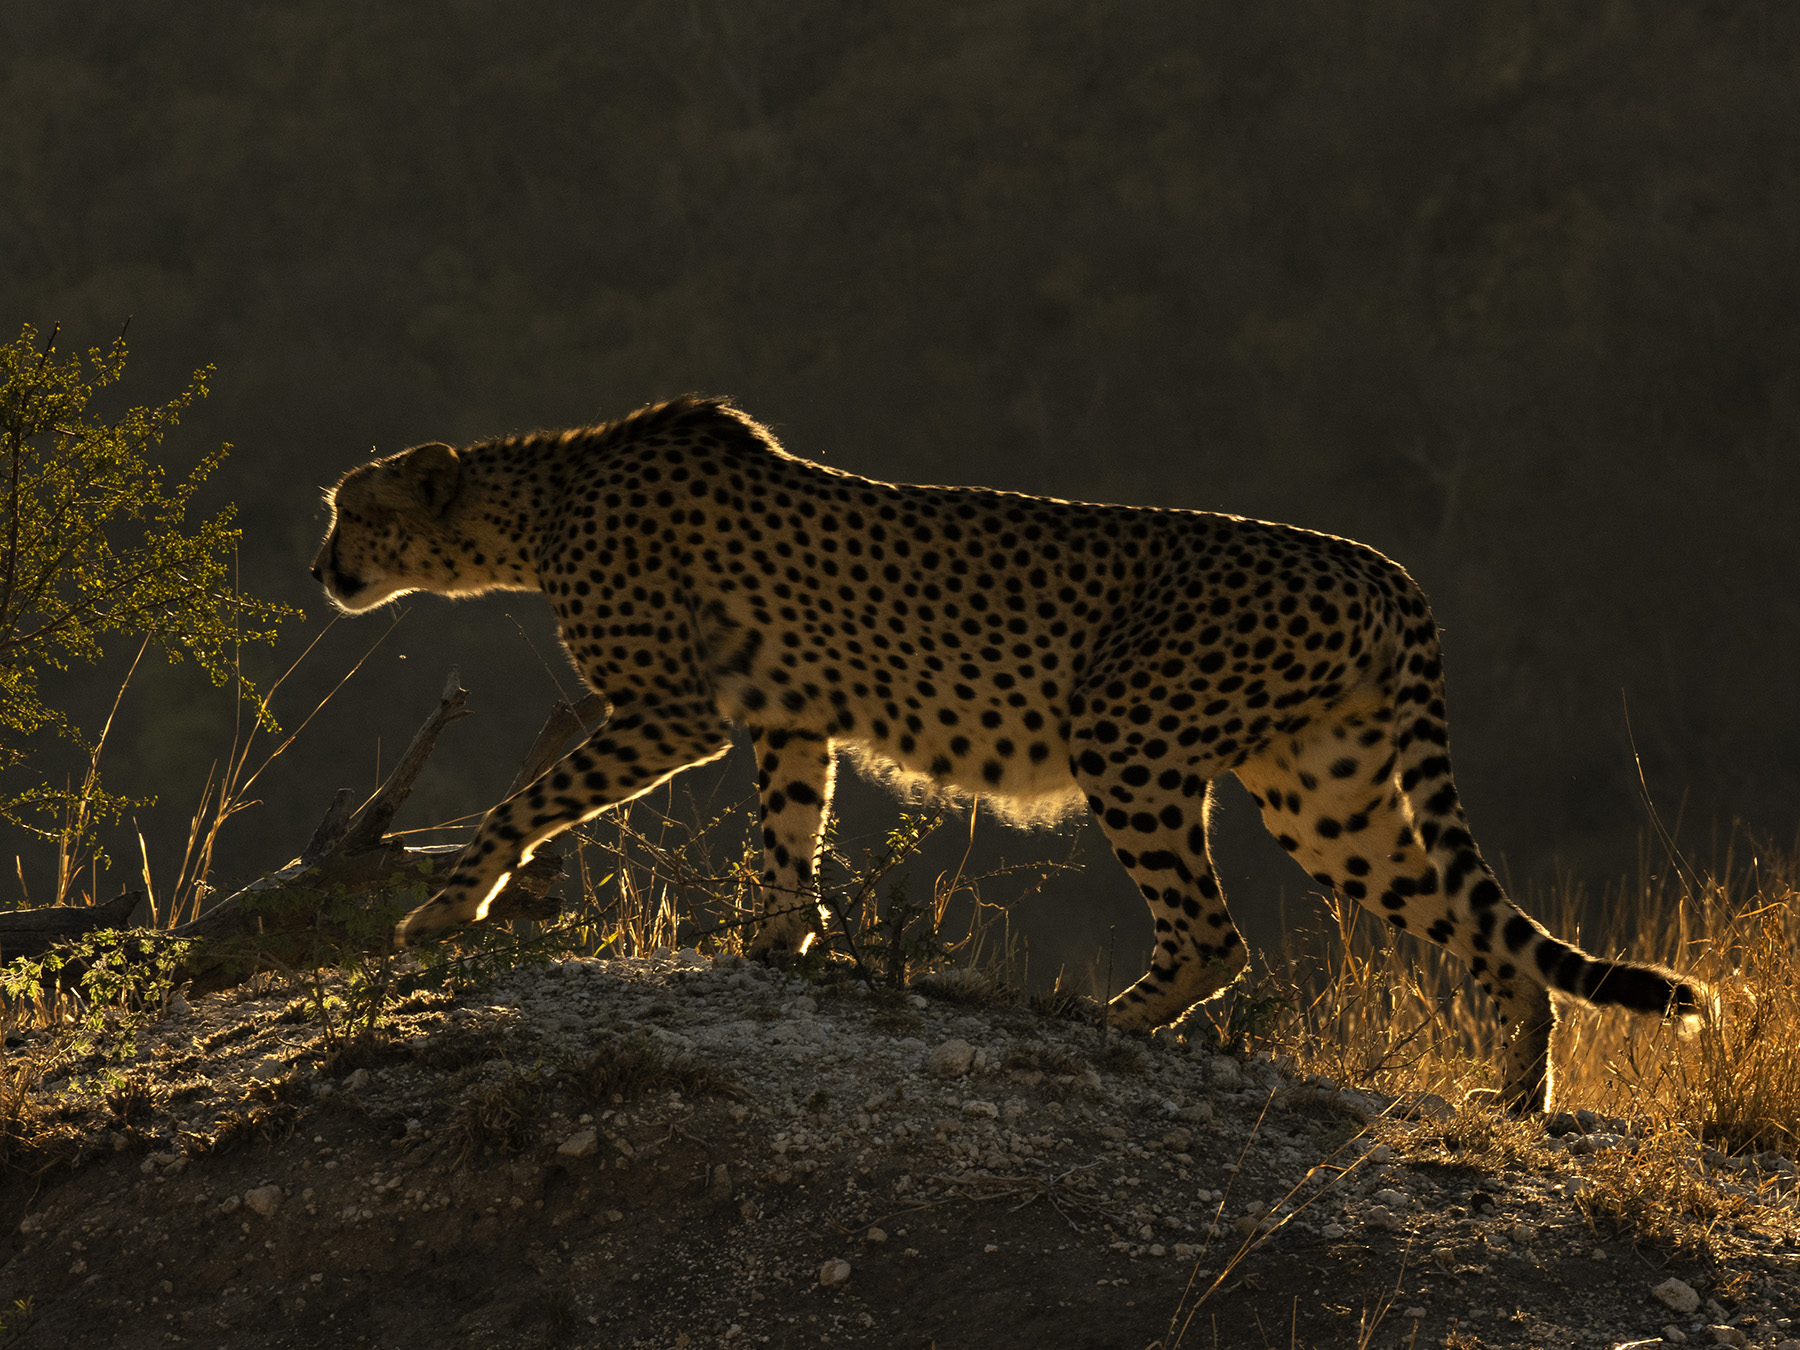 Ranjan_Ramchandani_The cheetah in the morning light.jpg